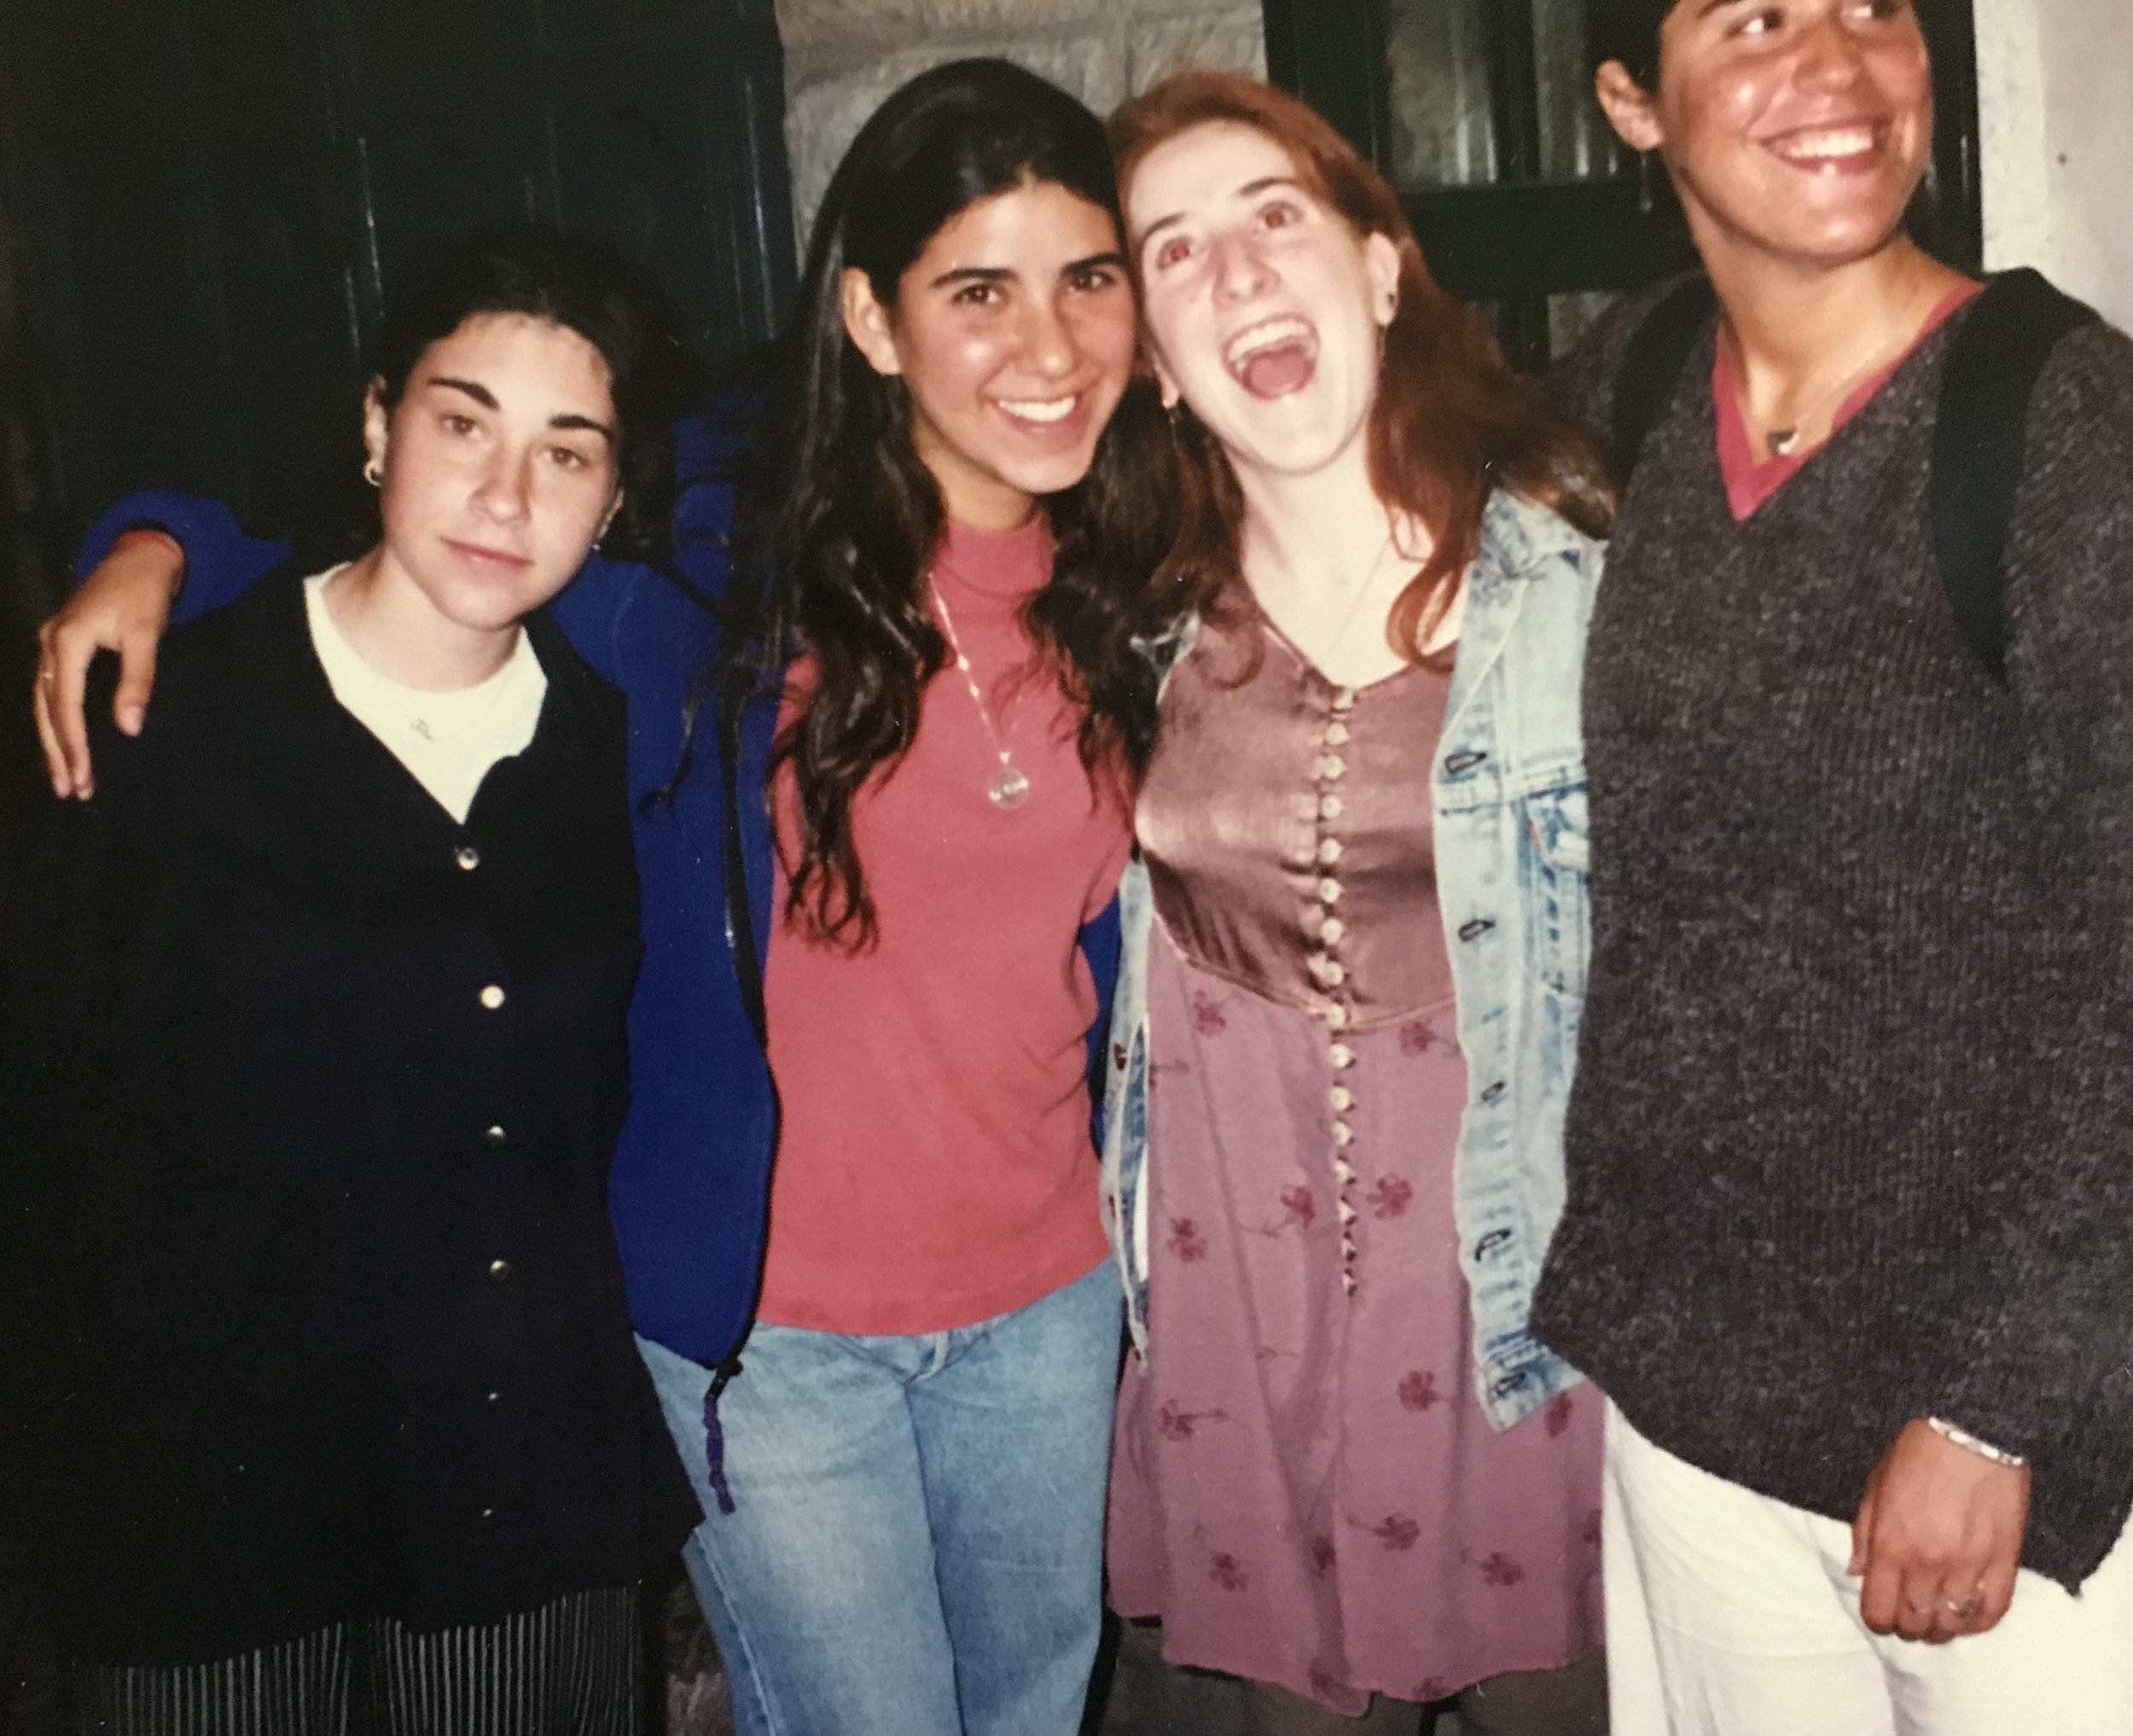 This photo was taken in Israel in '97? (I always get years mixed up). The ones on my right just met up in Israel for the first time in 20 years! Ellie is from the UK, Jodi now lives in Israel and the other woman on my left is a childhood friend who lives in South Africa (she helped me score my first NYC apt). We had such a magical time as travelers back in the day. Their recent post got me thinking about how much I cherish them and the memories I have with them. (I'm the redhead, for anyone that's only met me with a mohawk!)